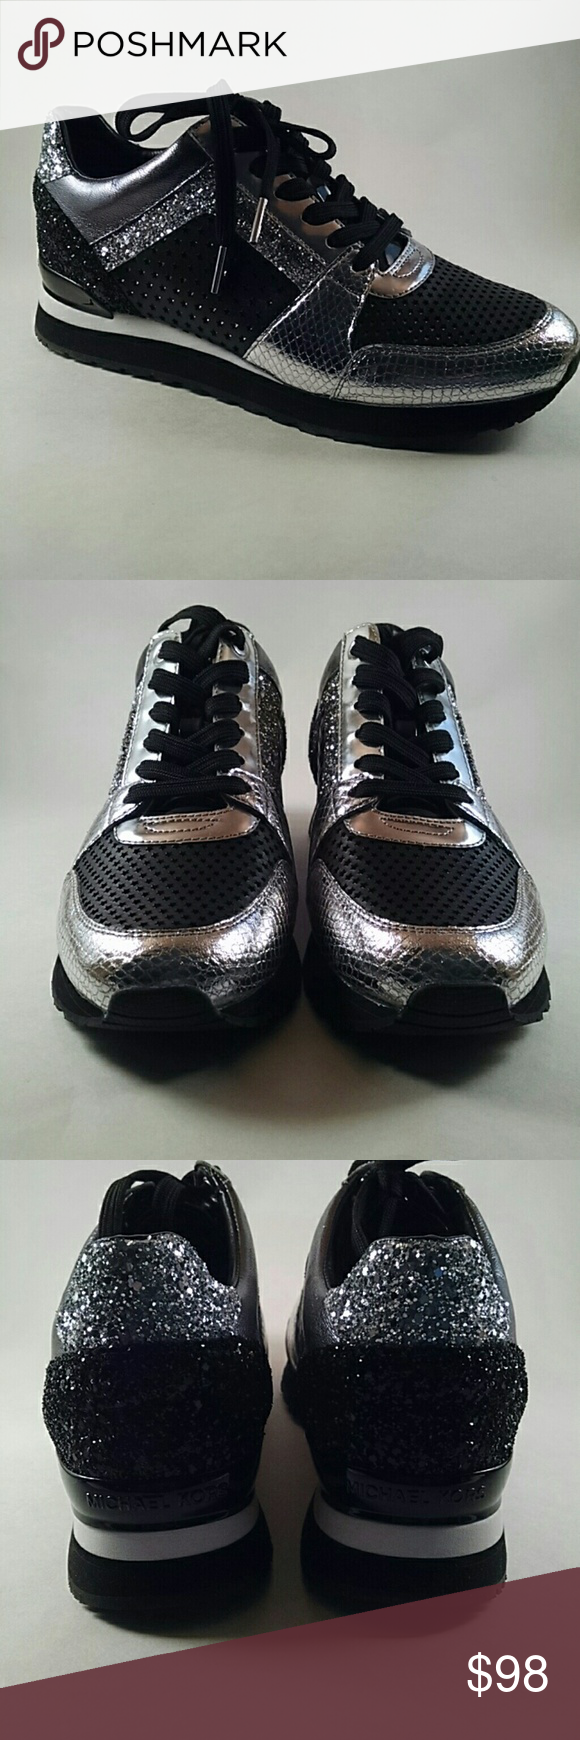 59f8fb208942 Michael Kors Black   Silver Sneakers 8.5M Billie Trainer. Black and silver.  Nice bling. New with box